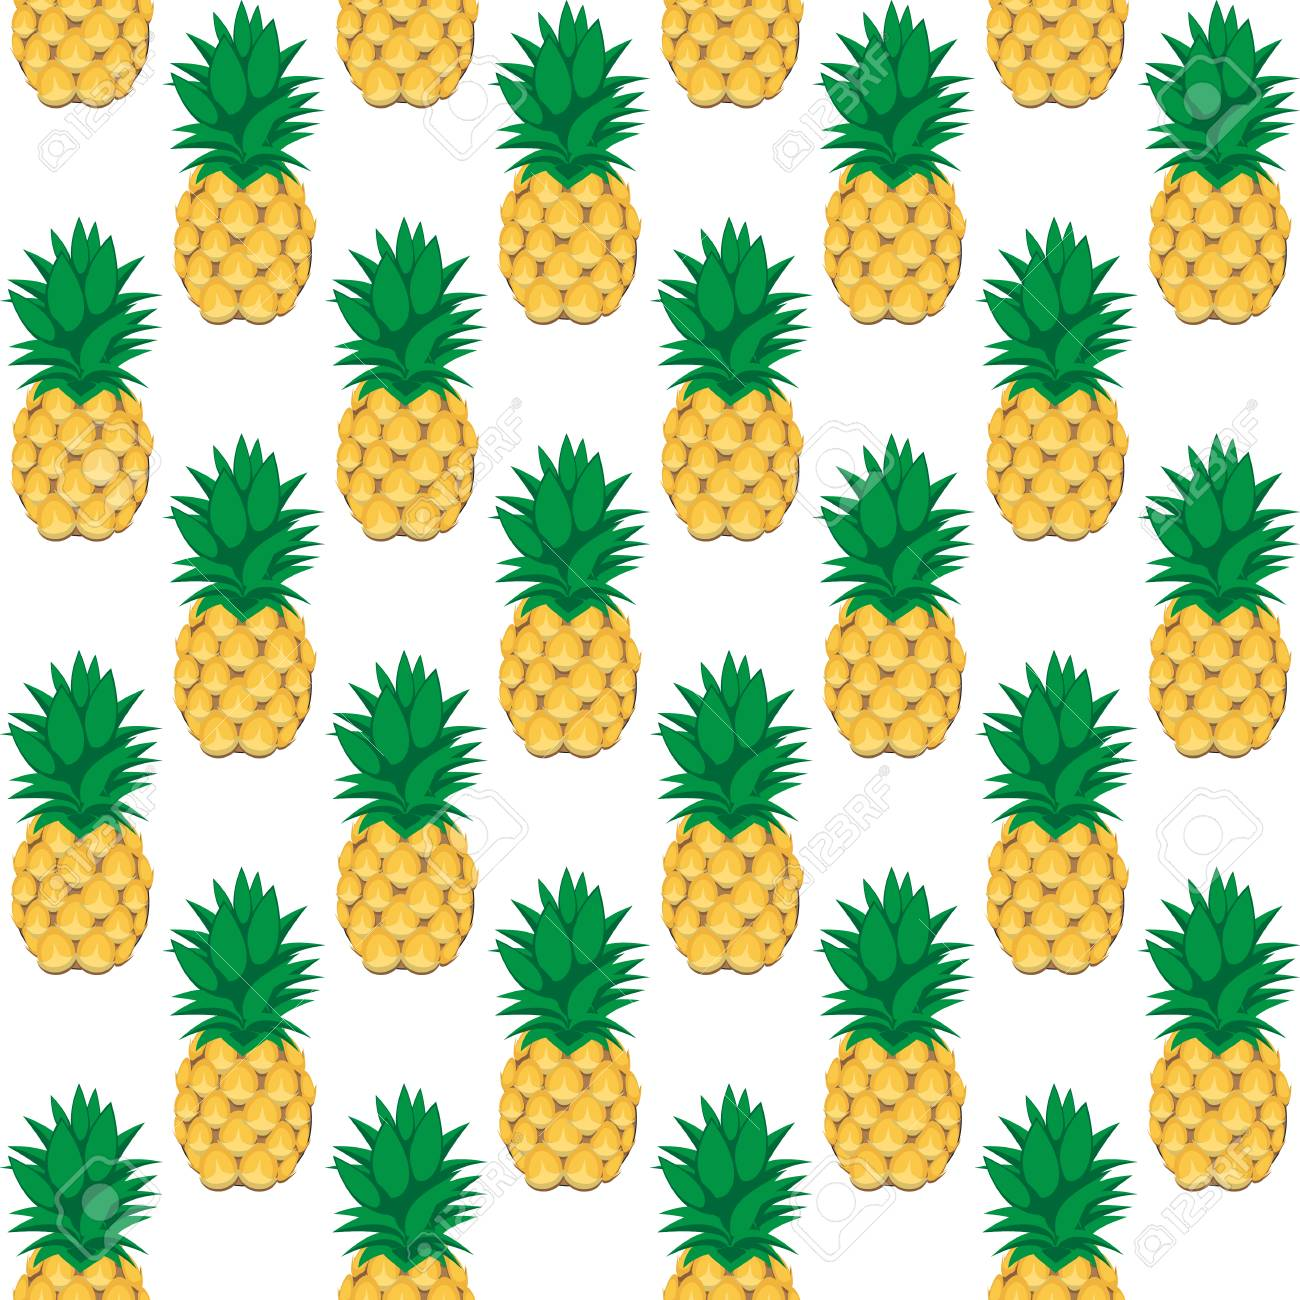 93462337 a pineapple fruit contour abstract seamless pattern on white background for wallpaper pattern web bl